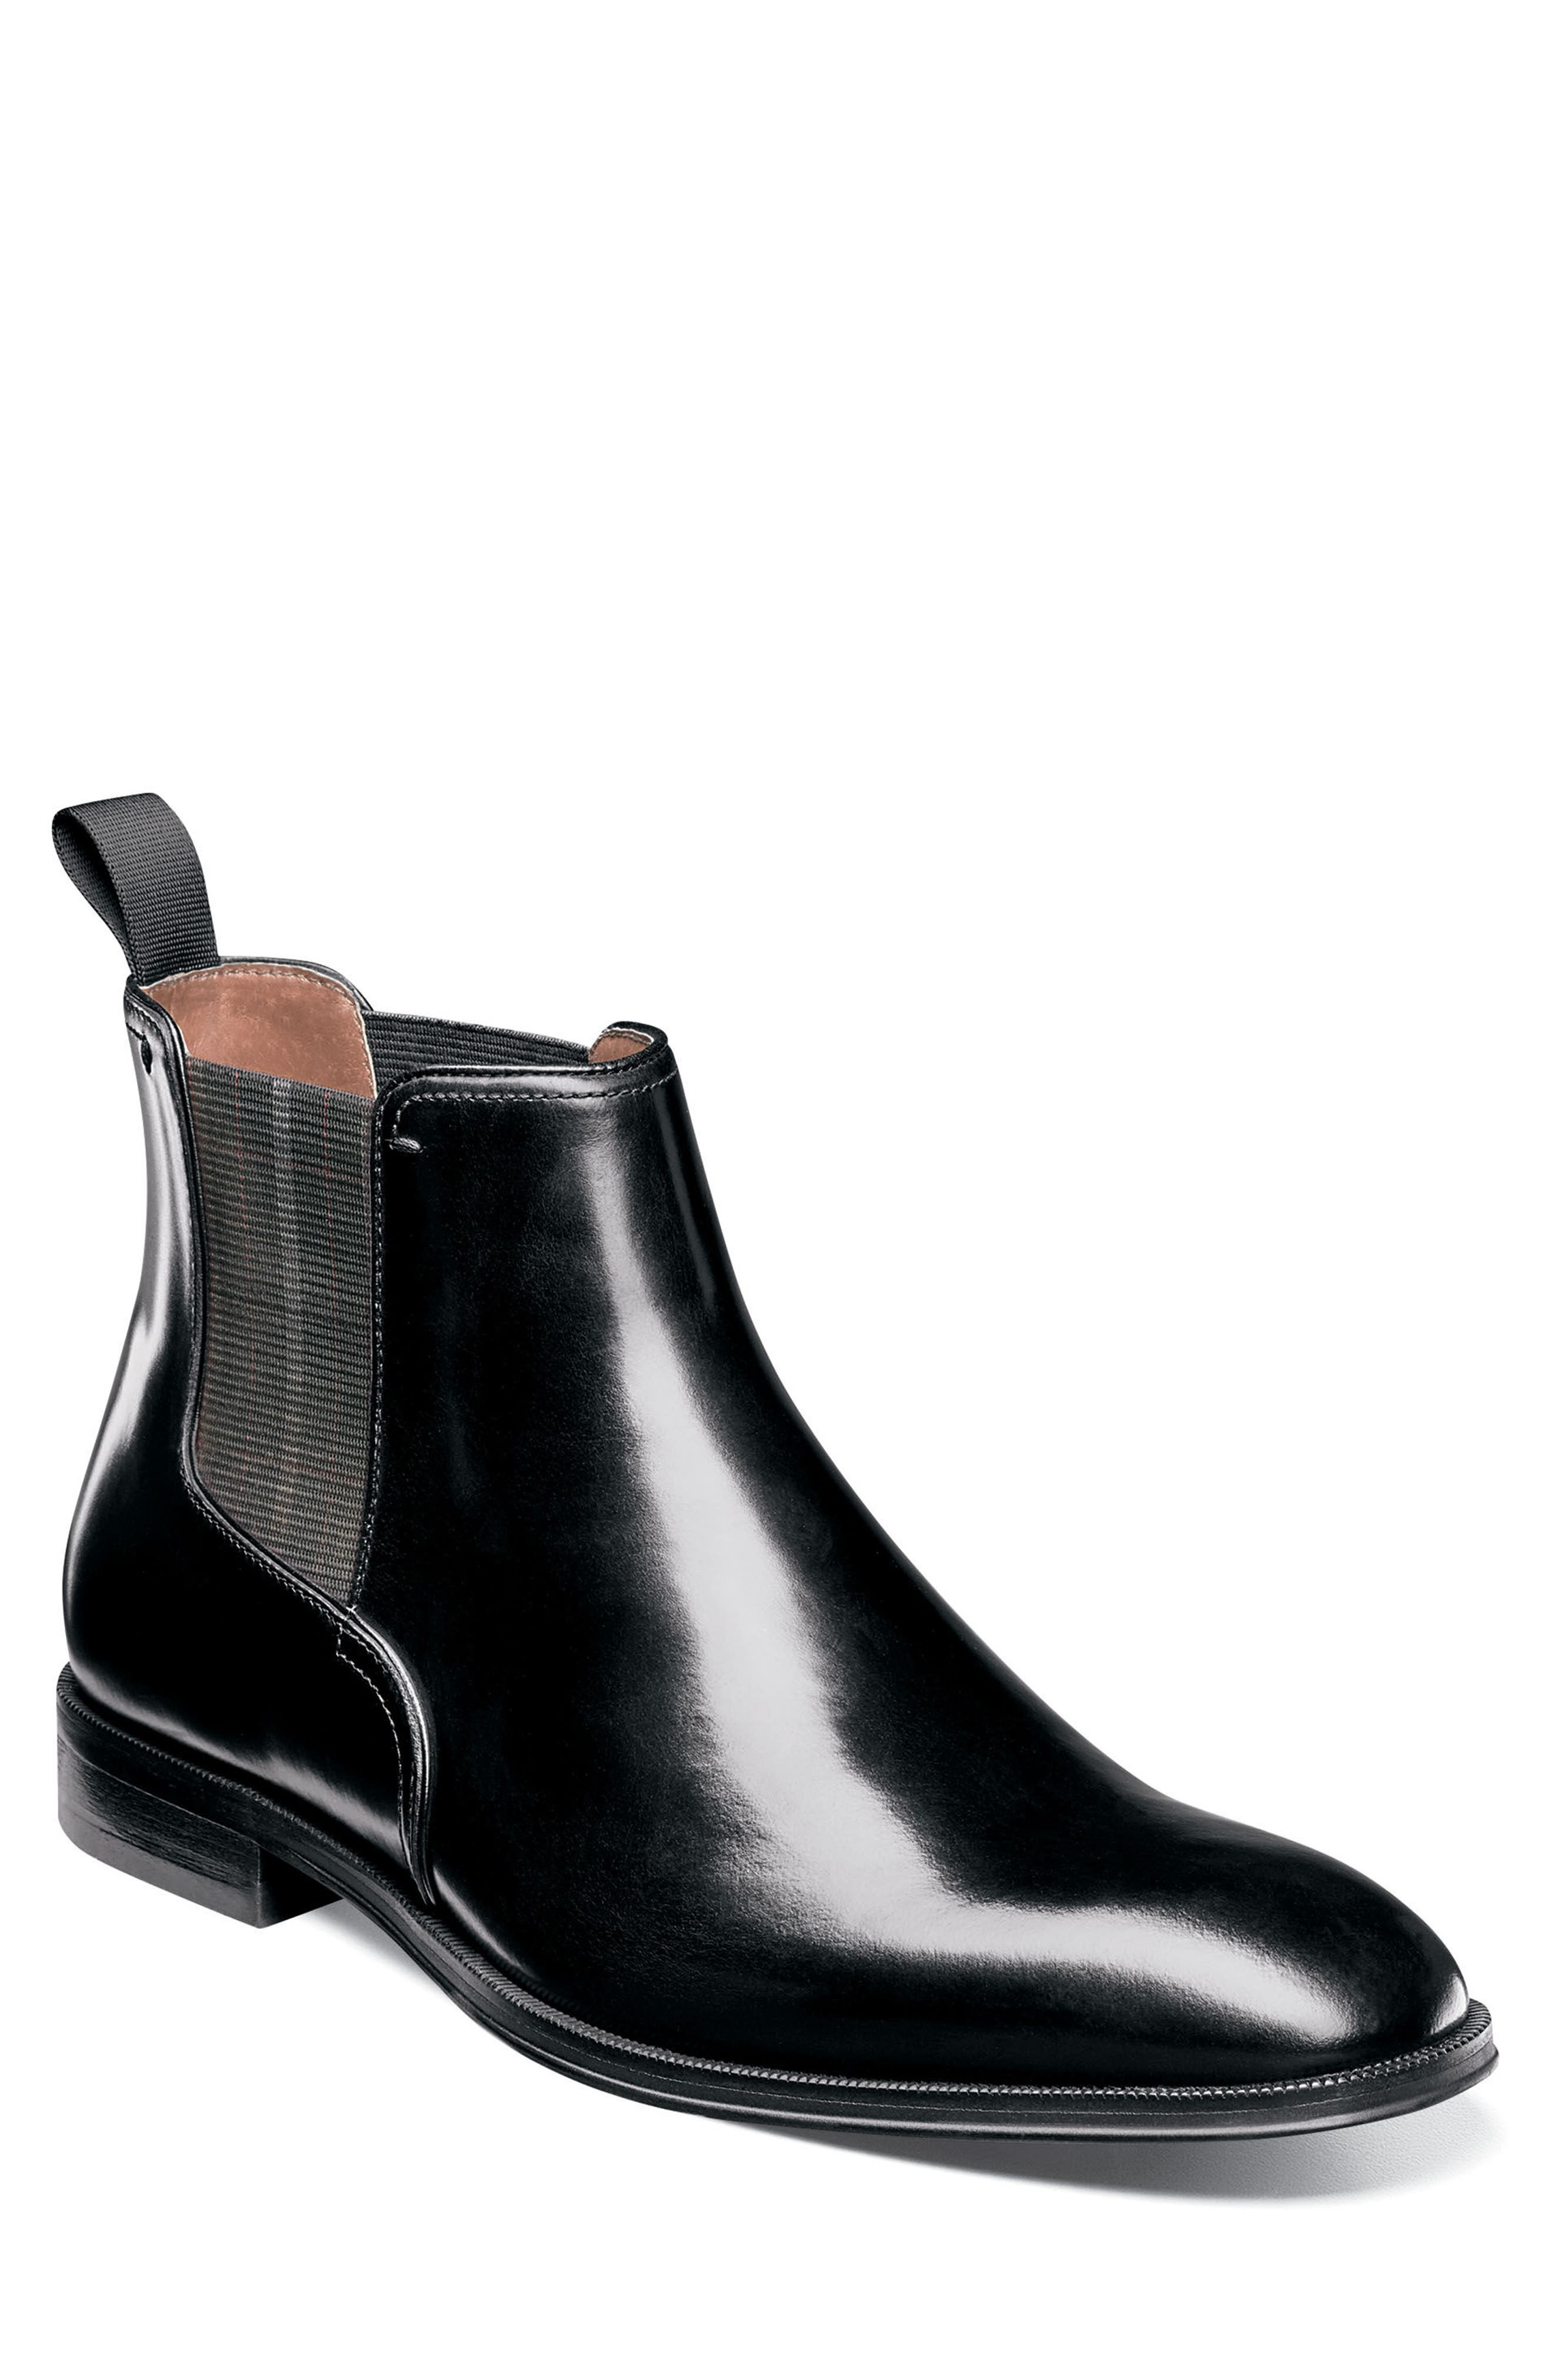 Belfast Chelsea Boot,                         Main,                         color, Black Leather